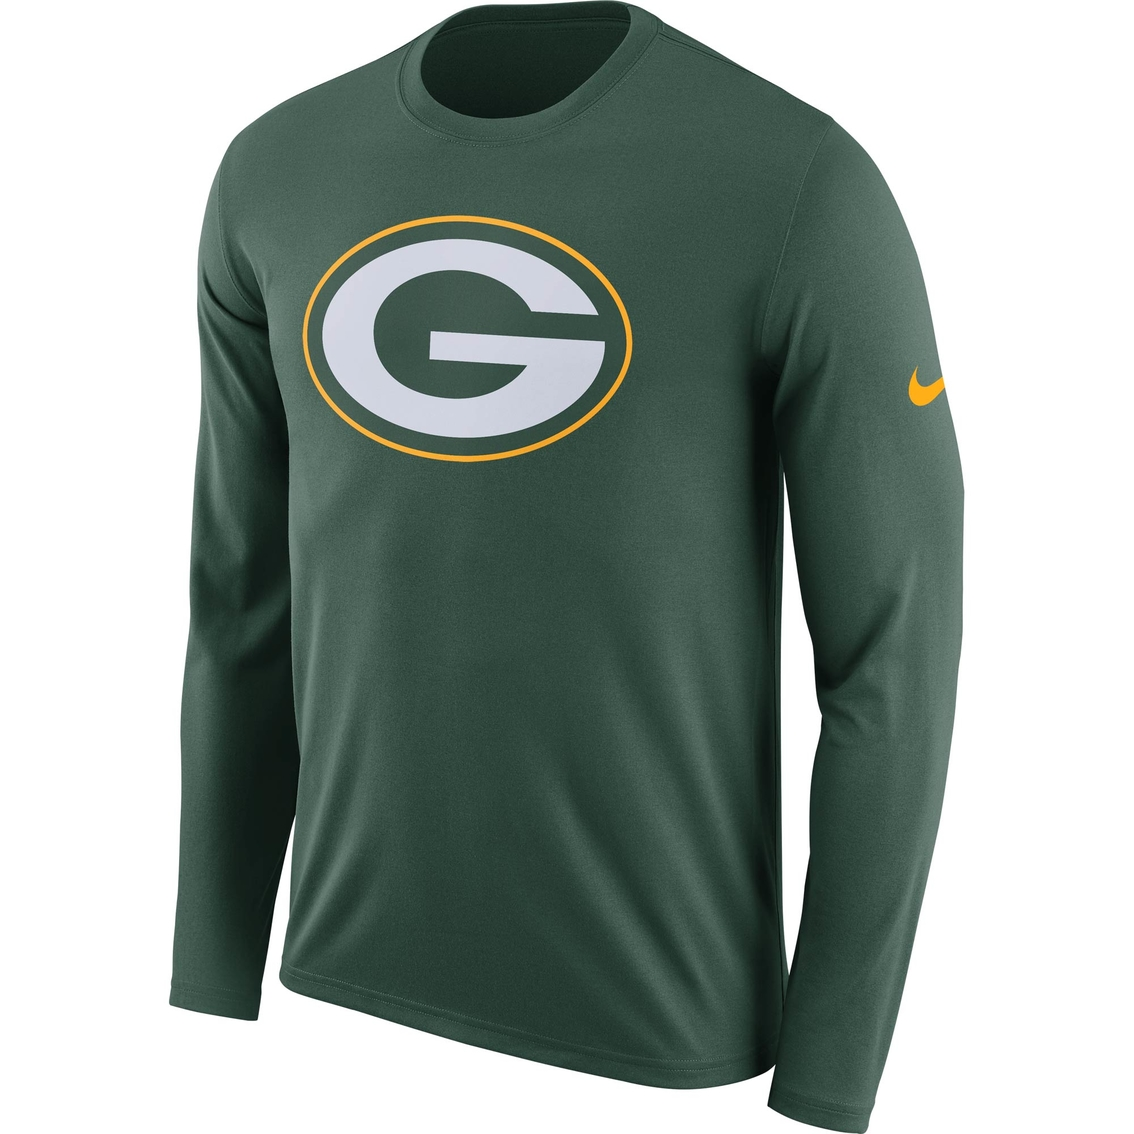 huge discount 57731 7e3a2 Nike Nfl Green Bay Packers Logo Tee | Shirts | Apparel ...